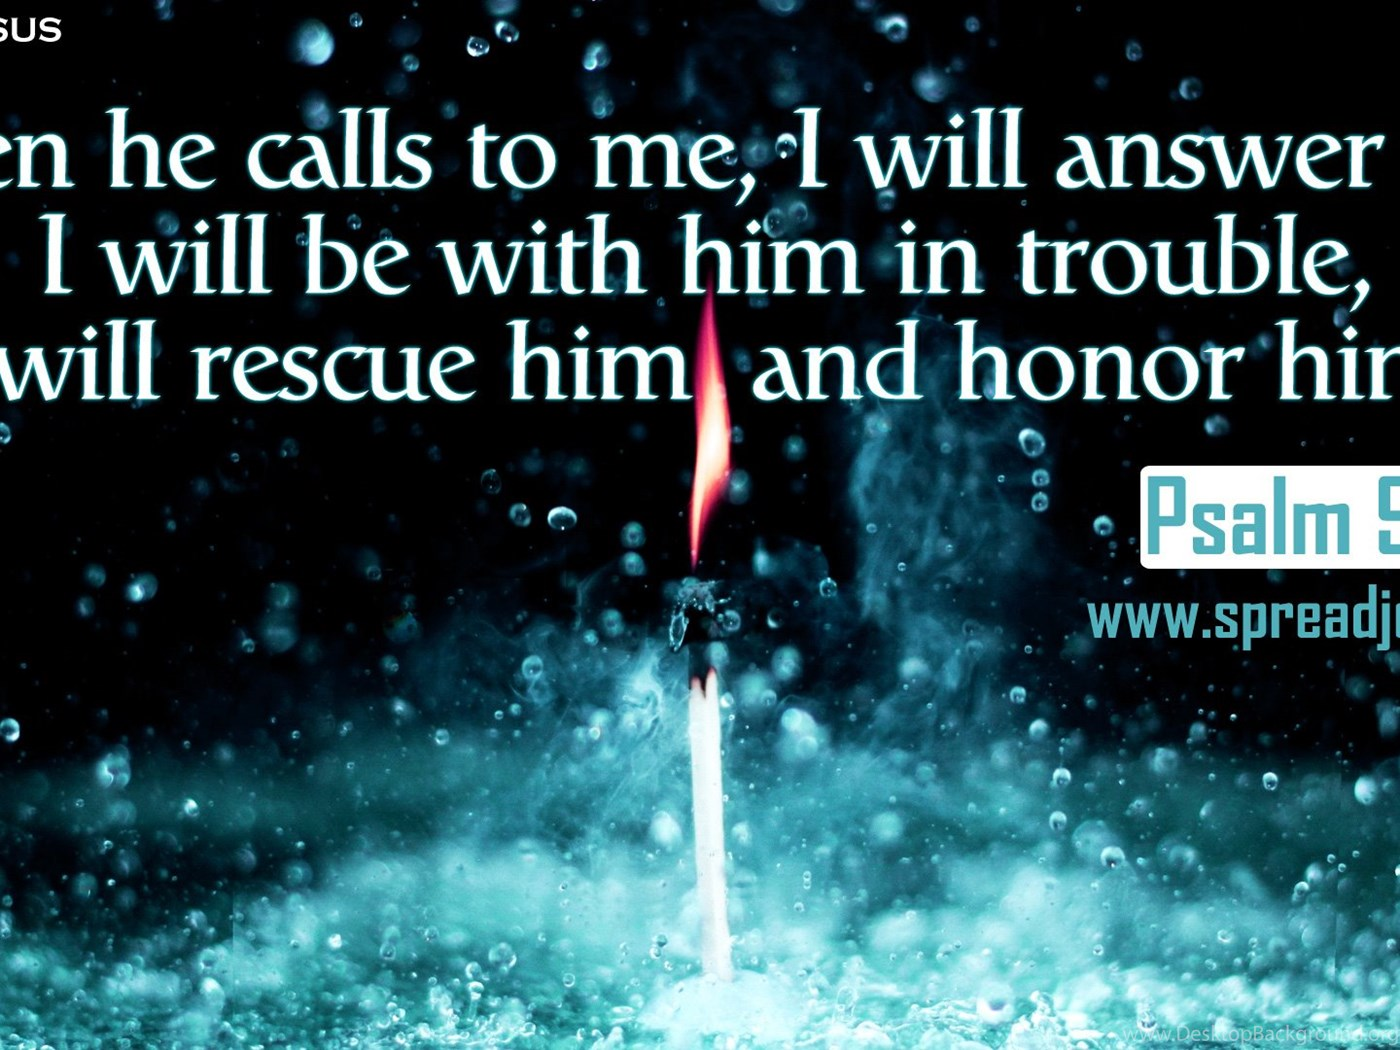 Psalm 91 15 Bible Quotes Hd Wallpapers Free Download Desktop Background